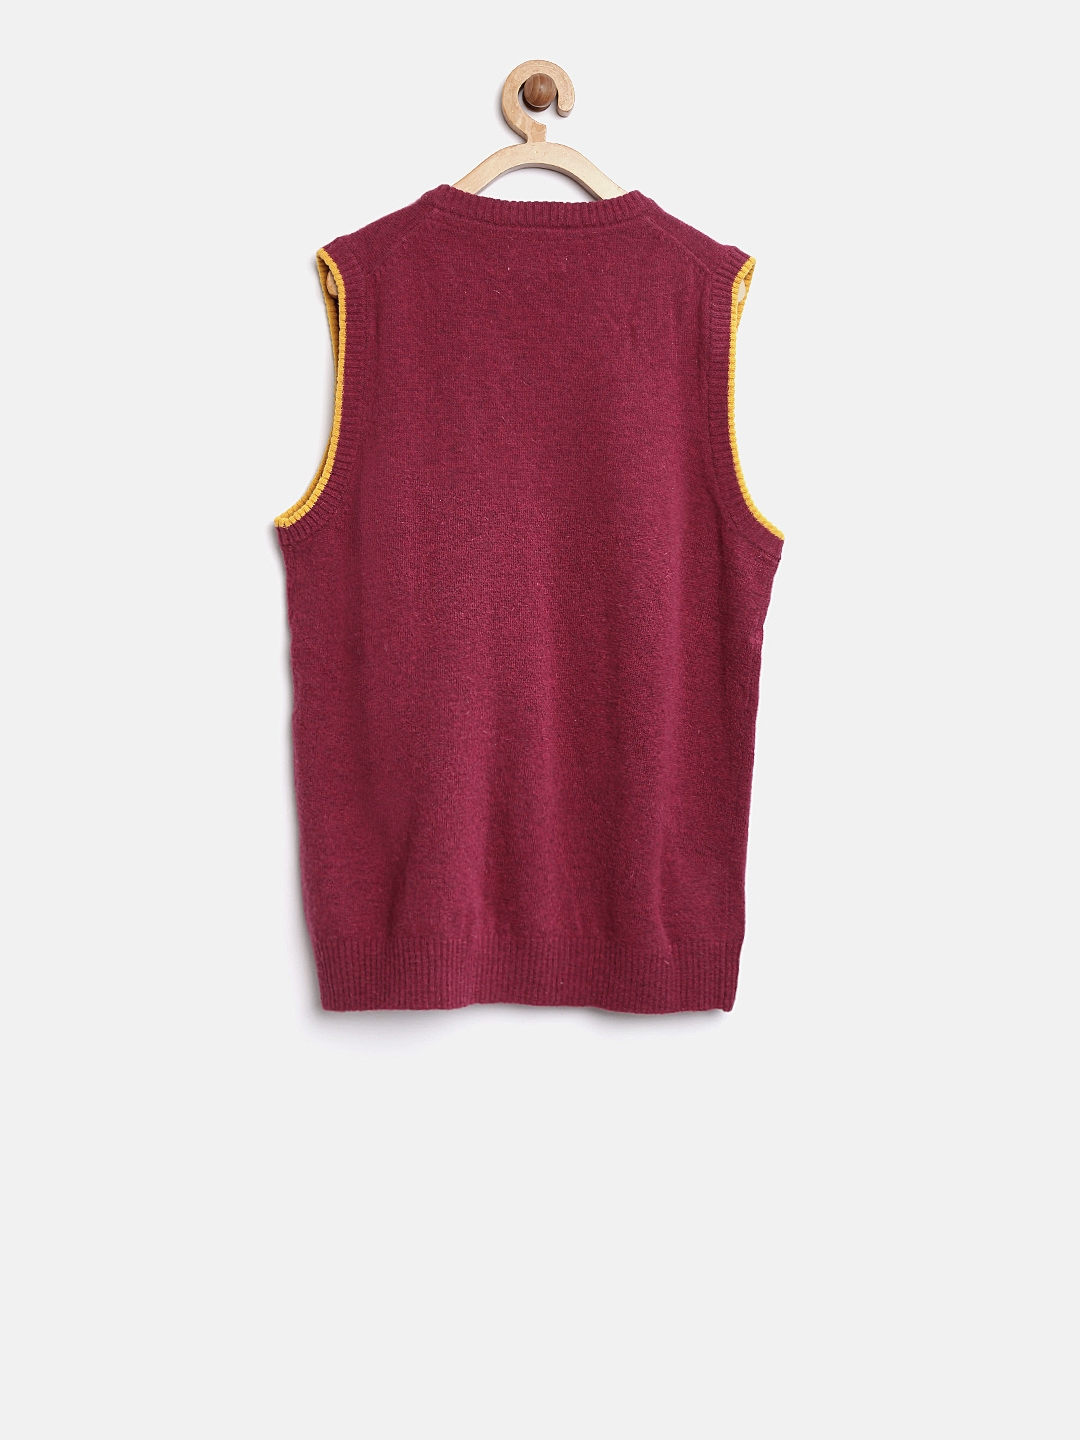 98bc581944ca Buy U.S. Polo Assn. Kids Boys Pink Solid Sweater Vest - Sweaters for ...